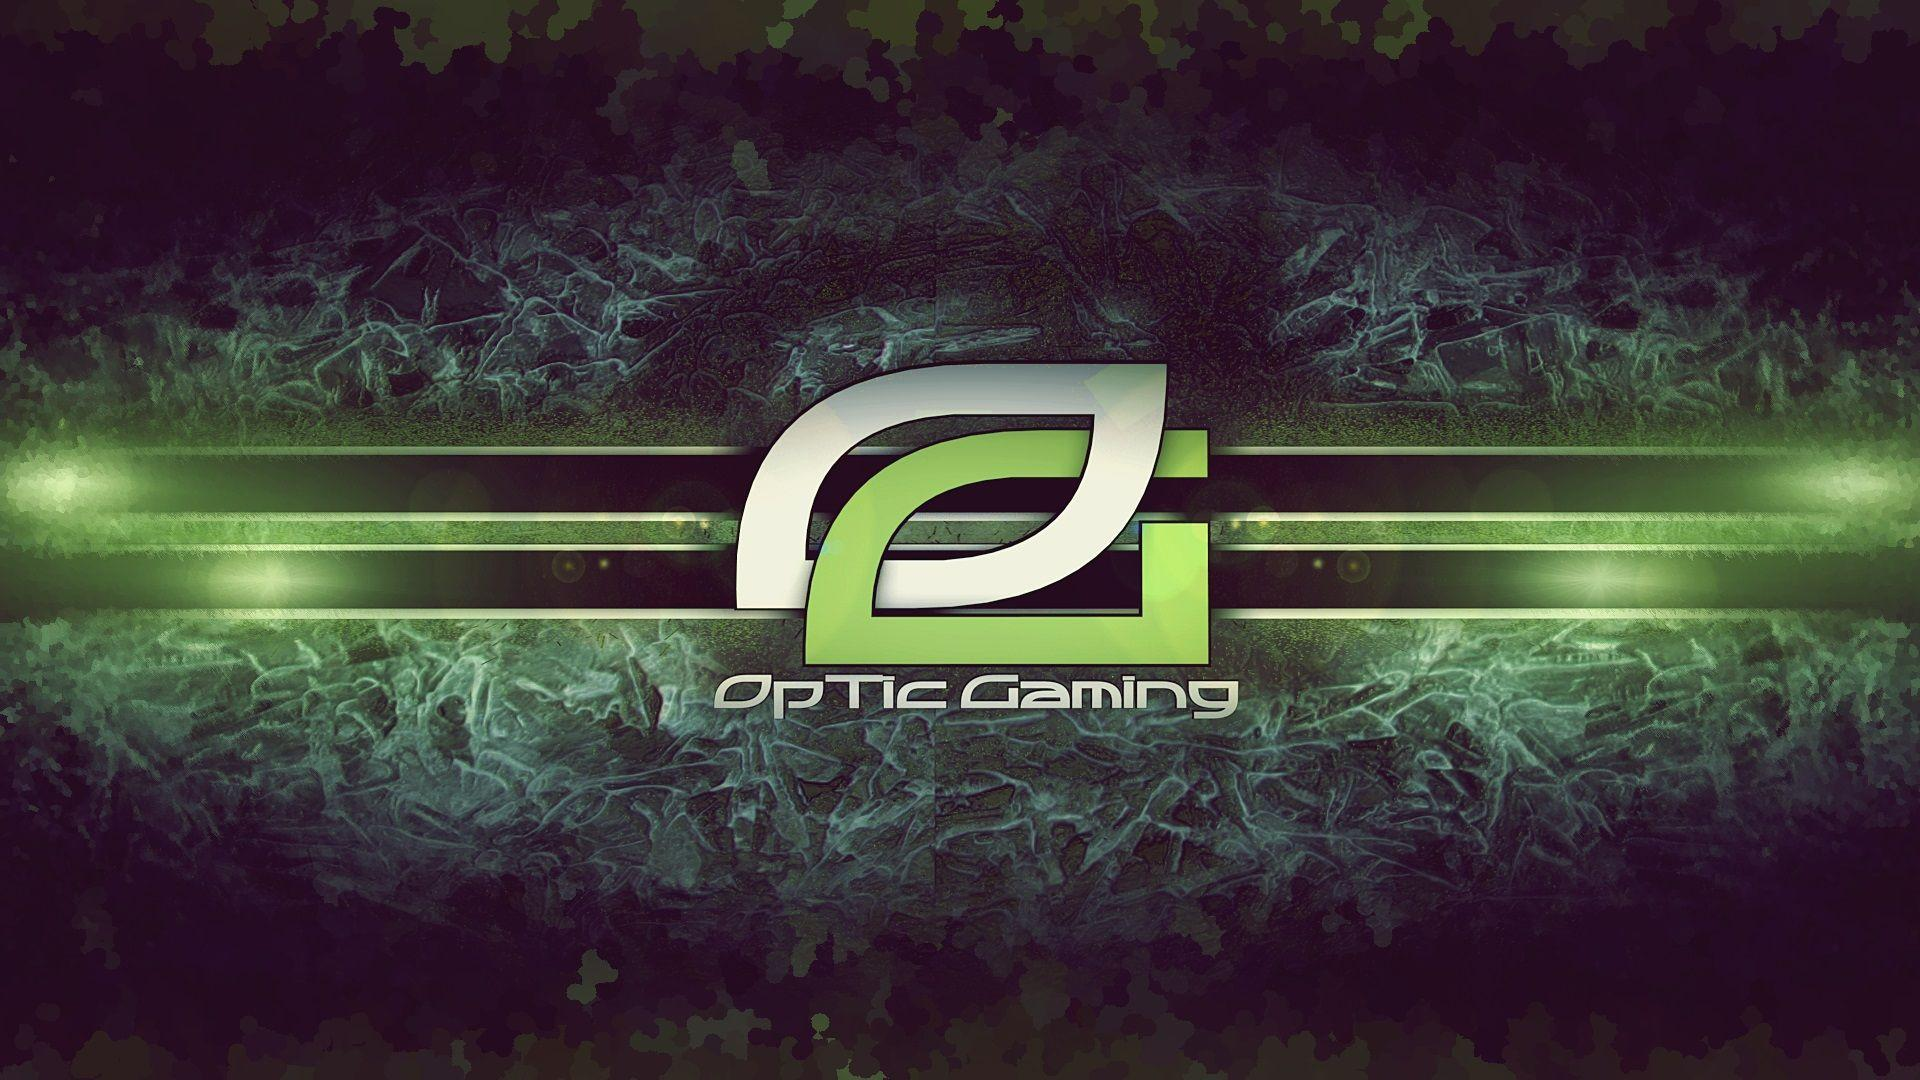 Optic Gaming Backgrounds   Wallpapers, Backgrounds, Images, Art ...